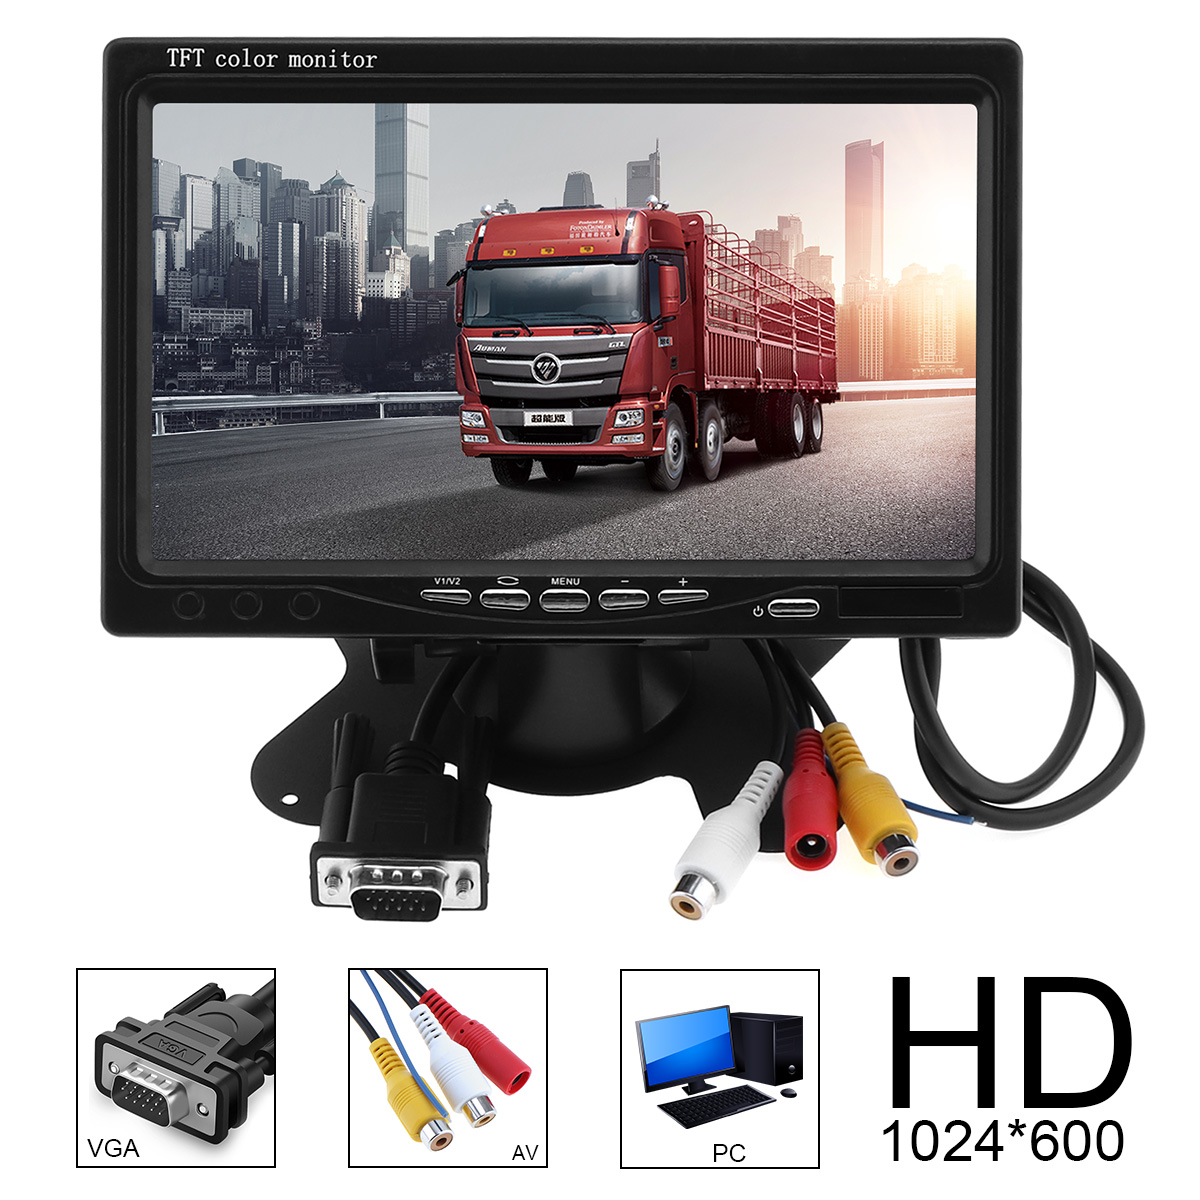 1024×600 7 Inch Ultra Thin TFT LCD HD Monitor Audio Video AV Car Home Monitor Bright Color with VGA Interface